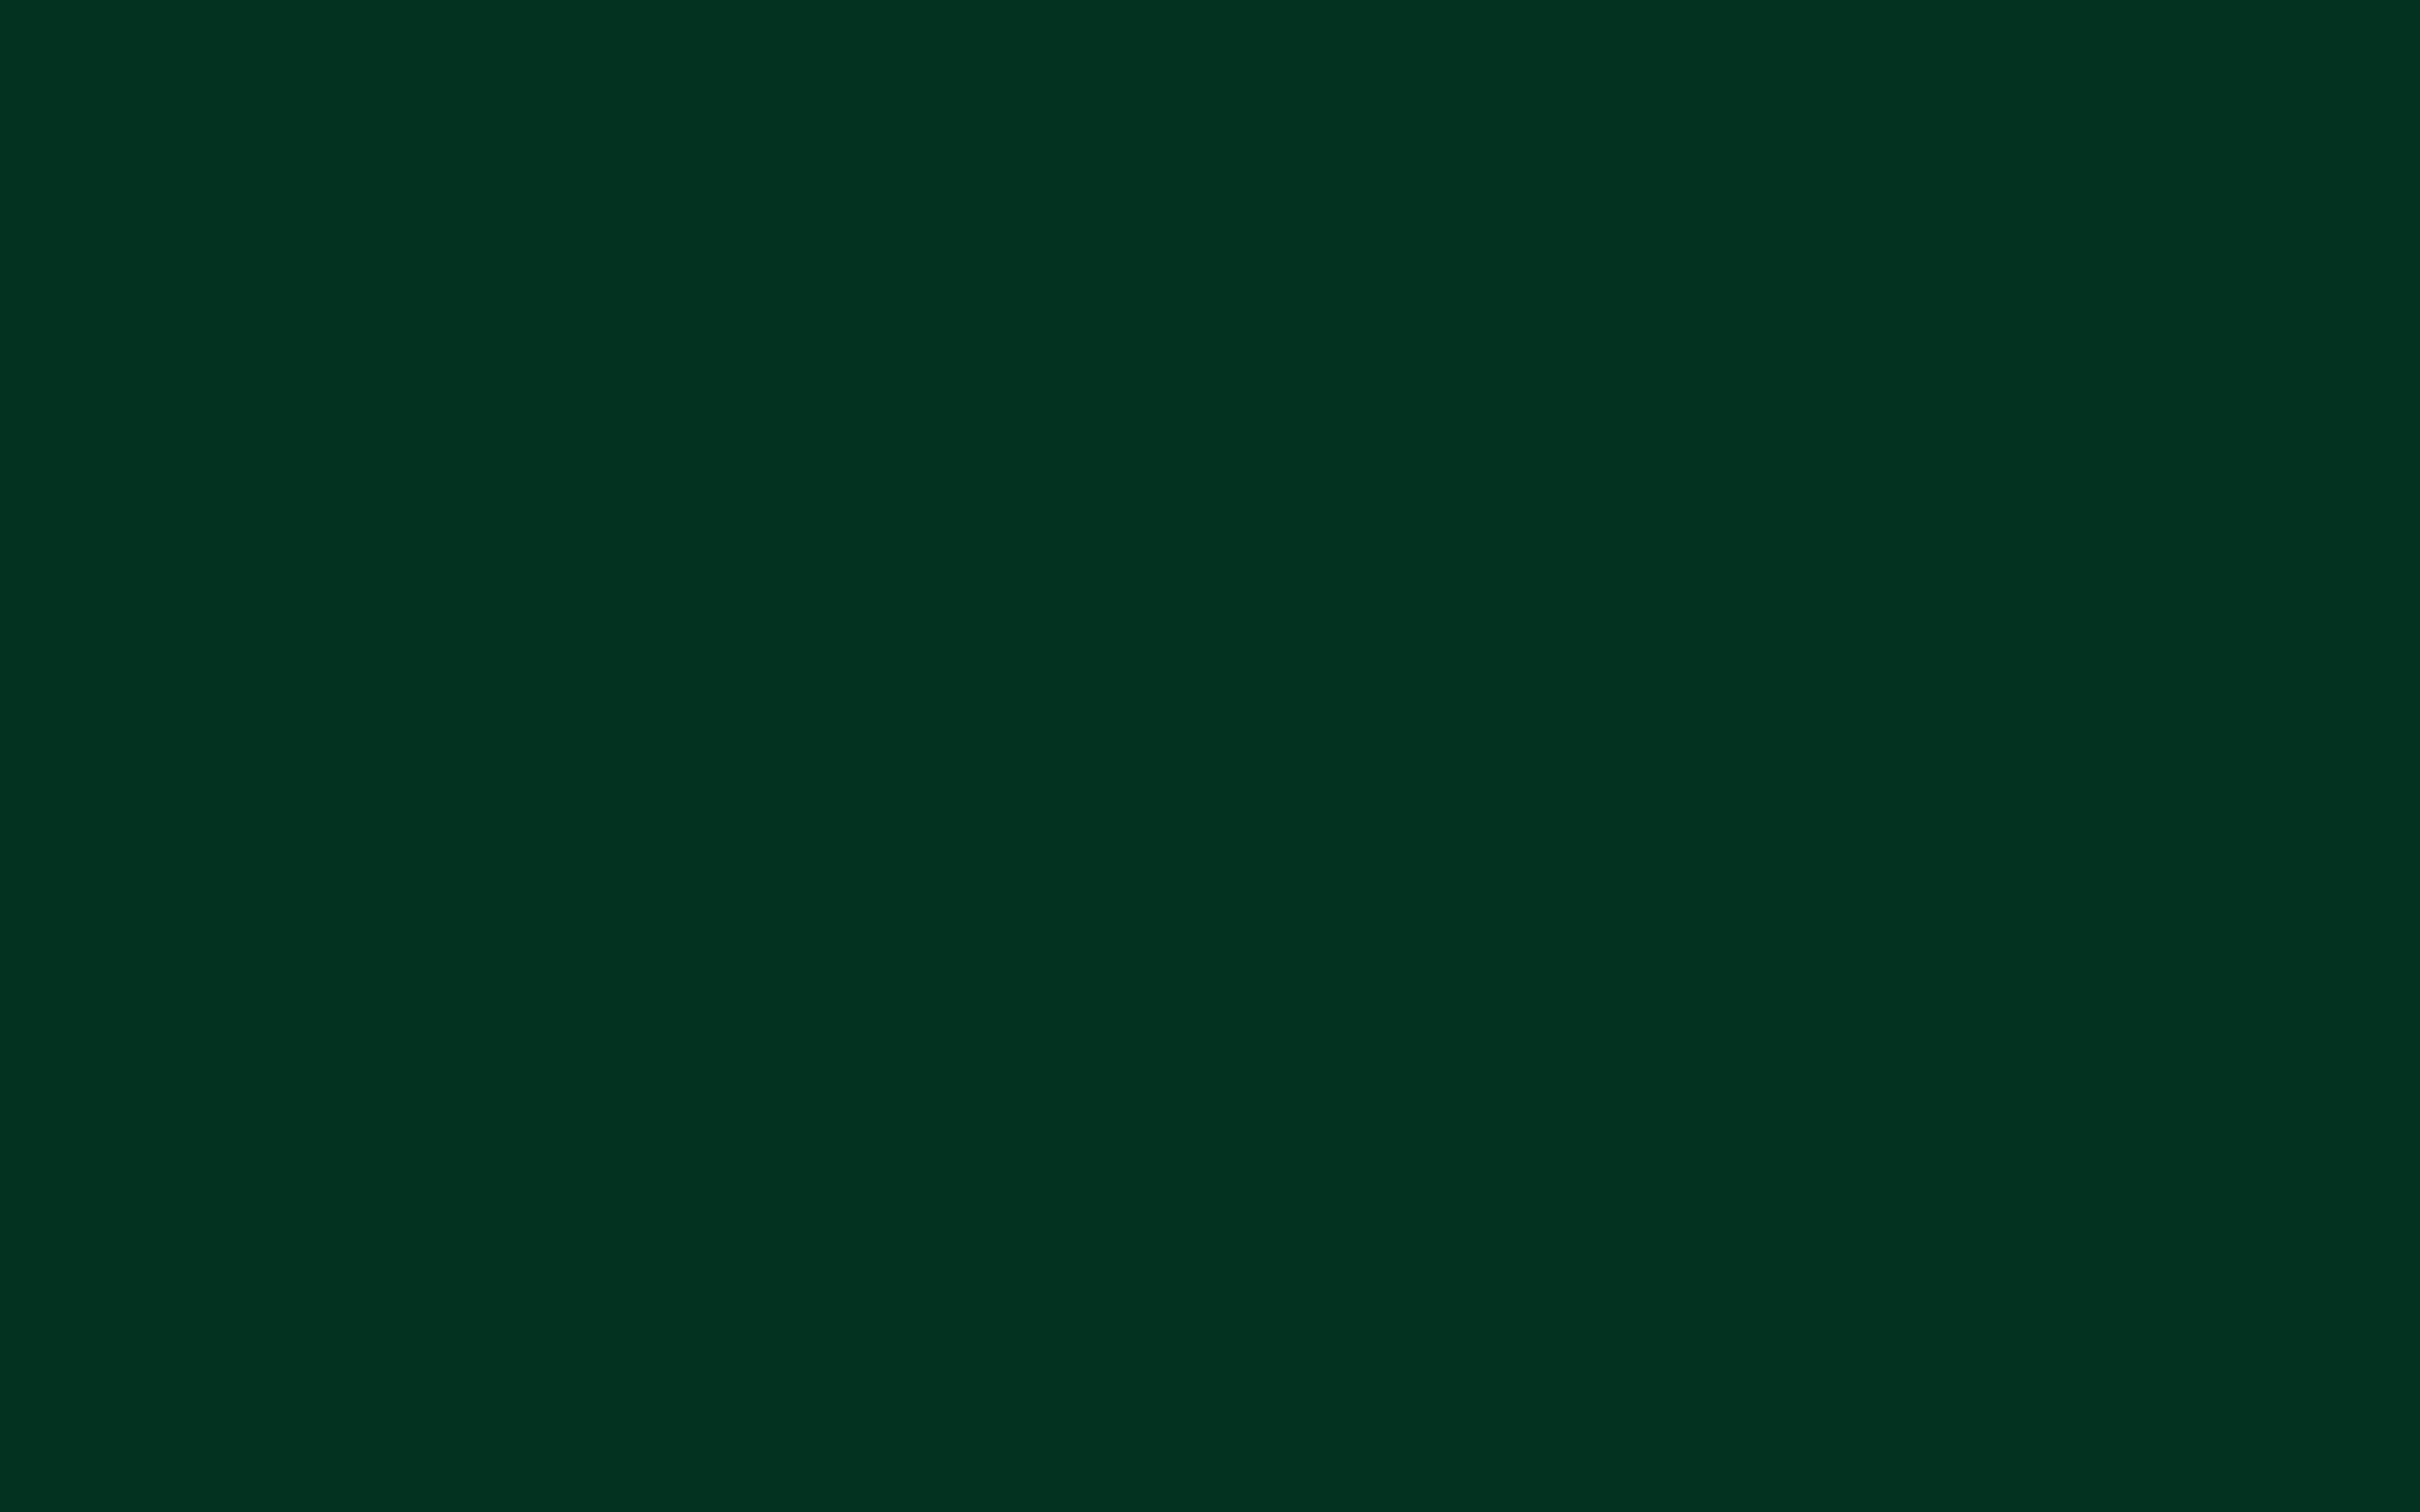 Resolution Dark Green Background Desktop By Click Category Pictures